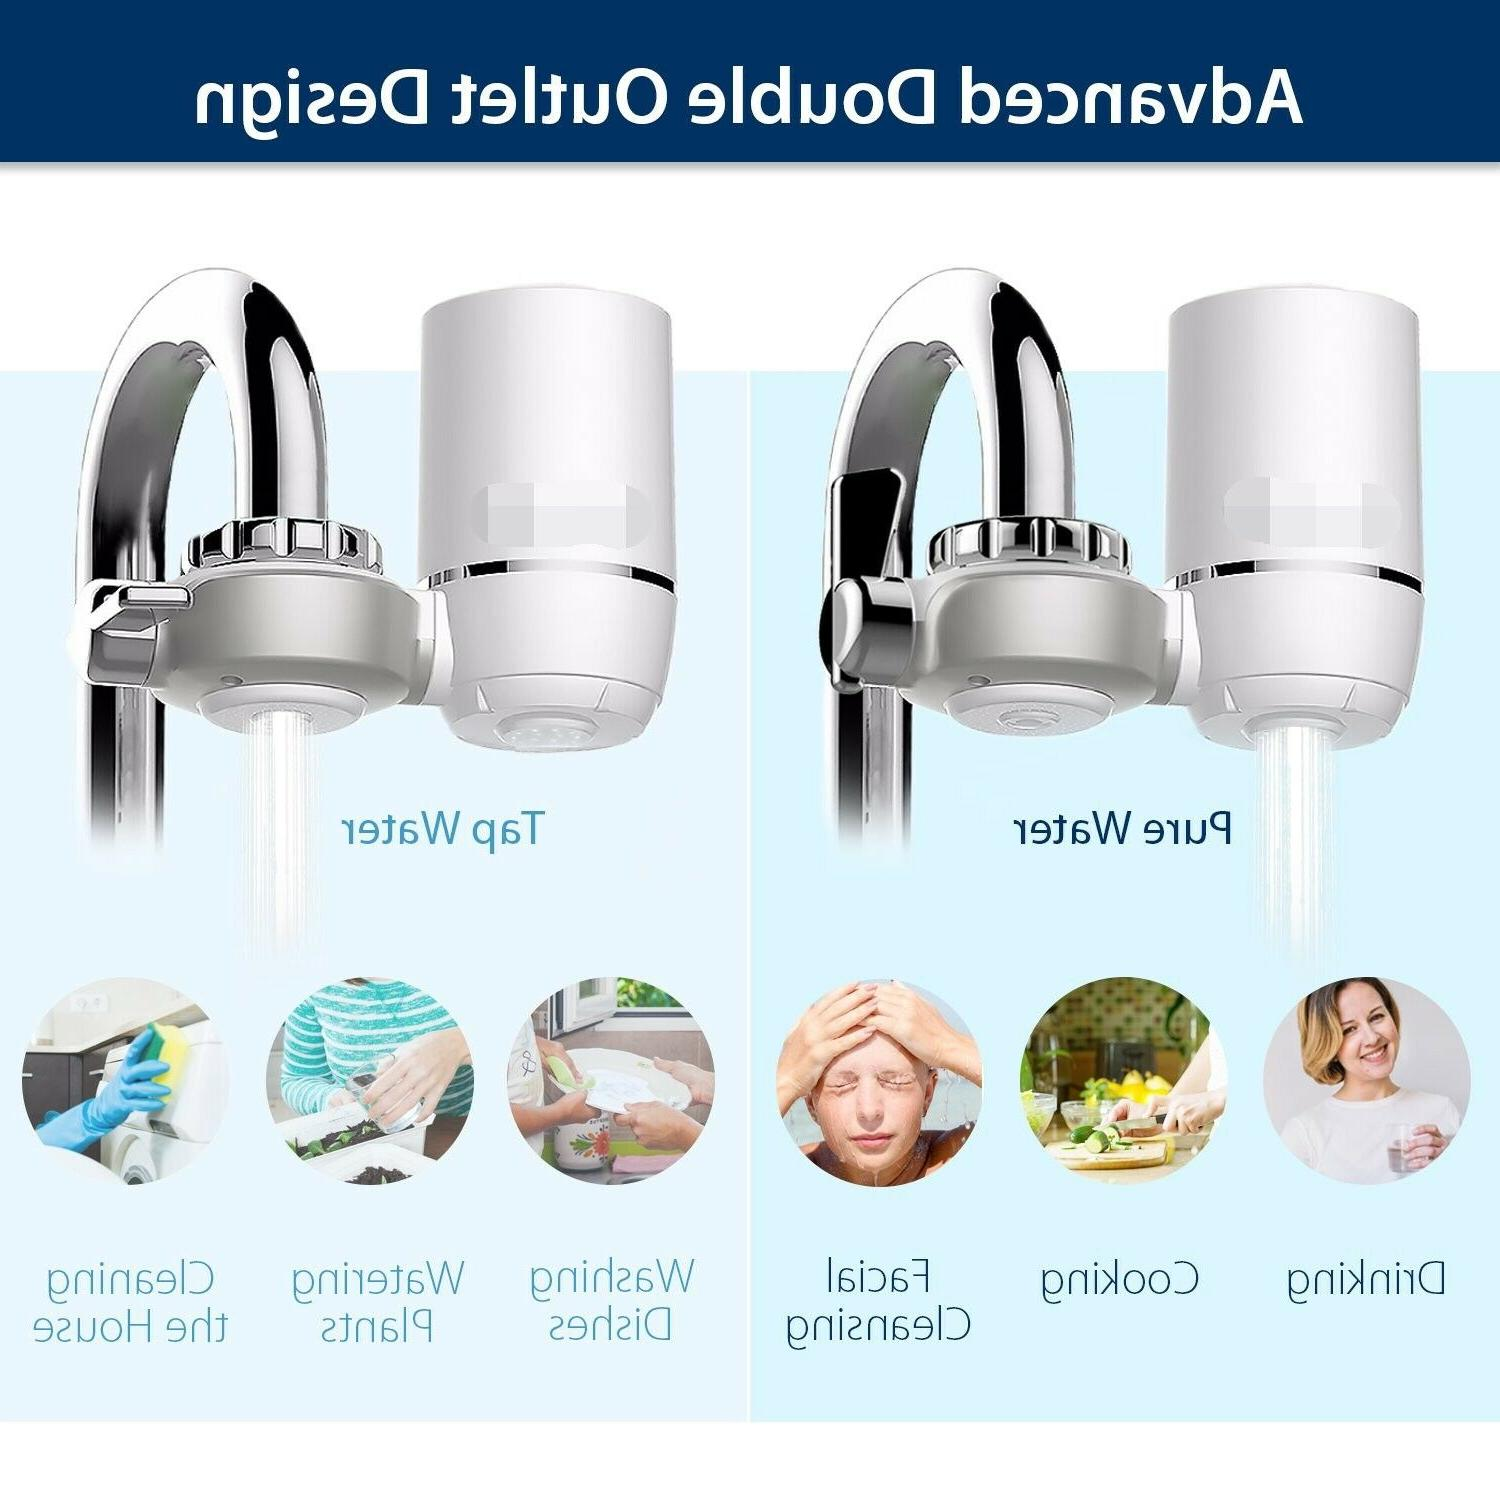 Faucet Water Filter, Tap Water Removes Lead, Flouride & Fits